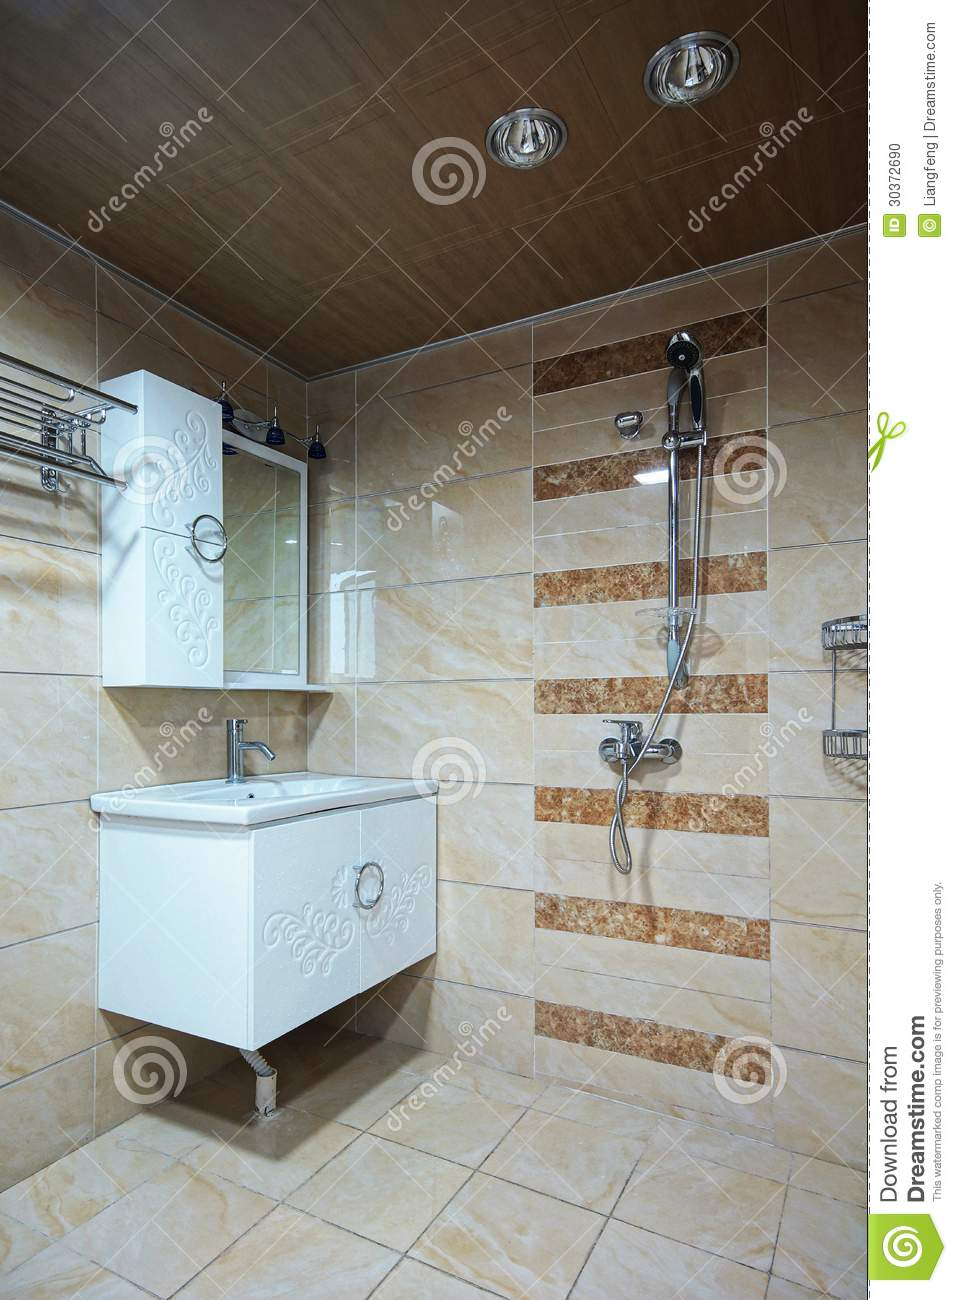 Bathroom stock photo image 30372690 - How to thoroughly clean your bathroom ...